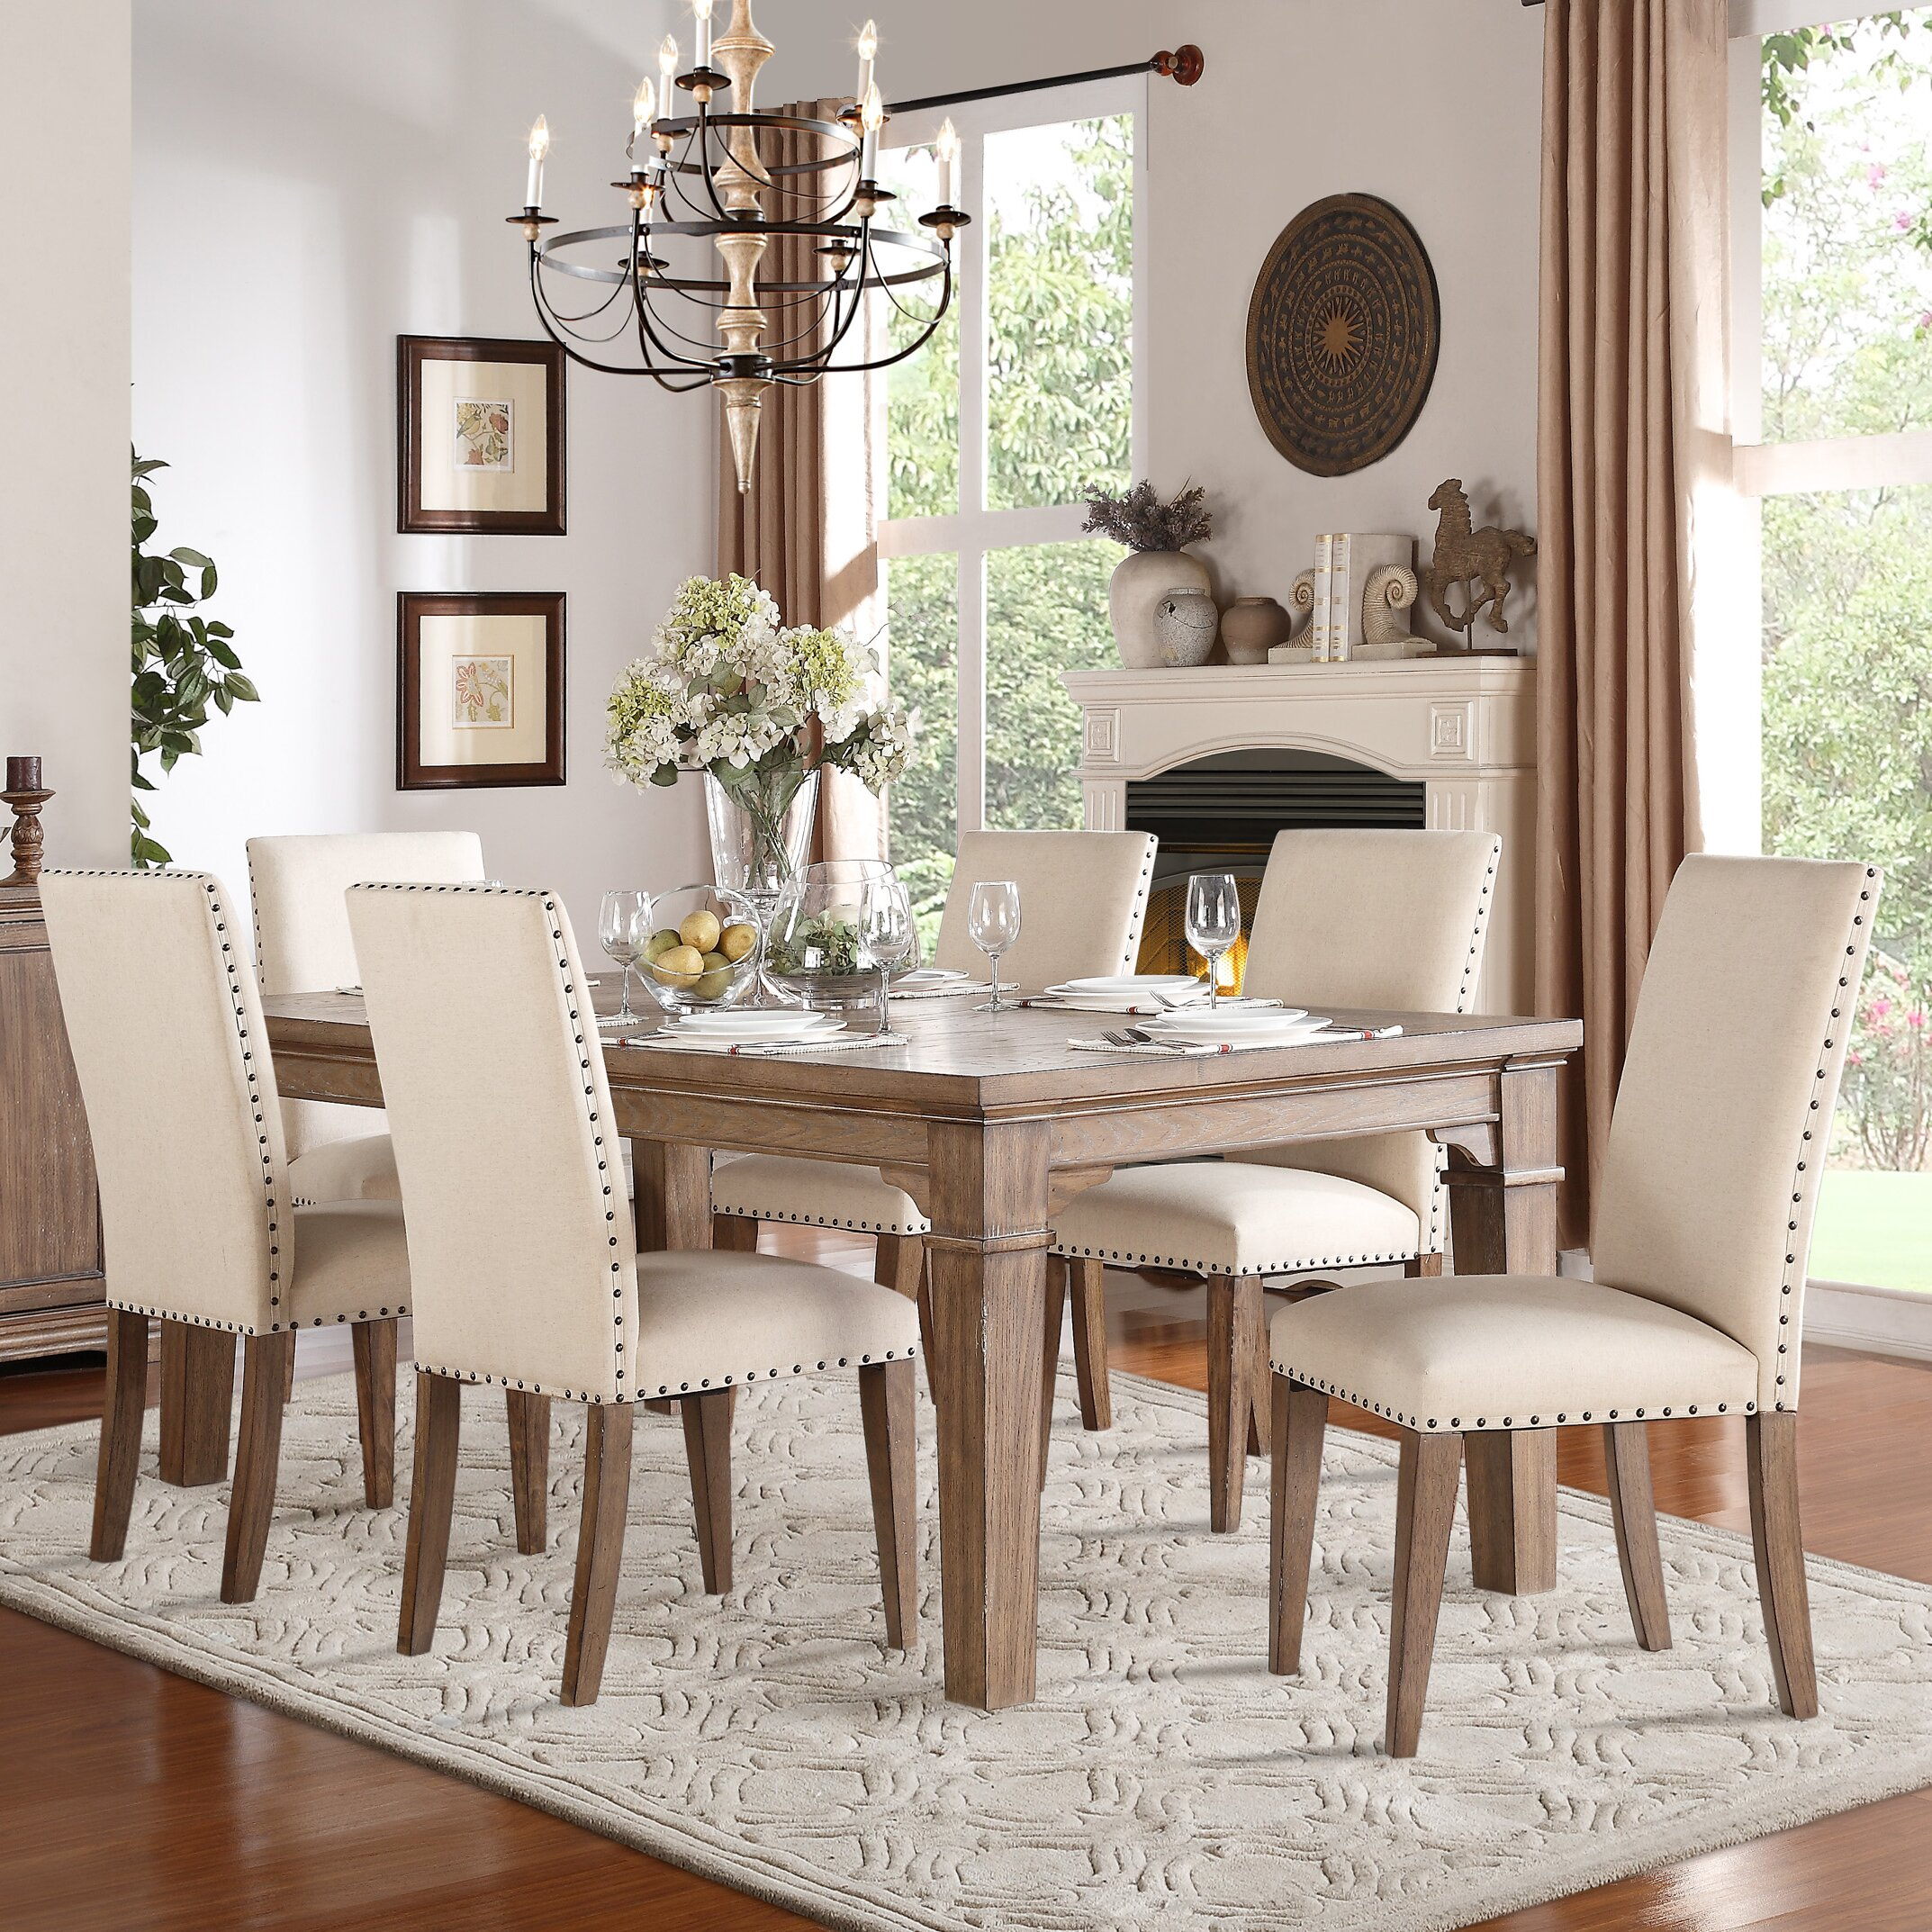 Darby Home Co Wilmington Extendable Dining Table amp Reviews  : Darby Home Co25C225AE Wilmington Extendable Dining Table from www.wayfair.com size 2146 x 2146 jpeg 1367kB